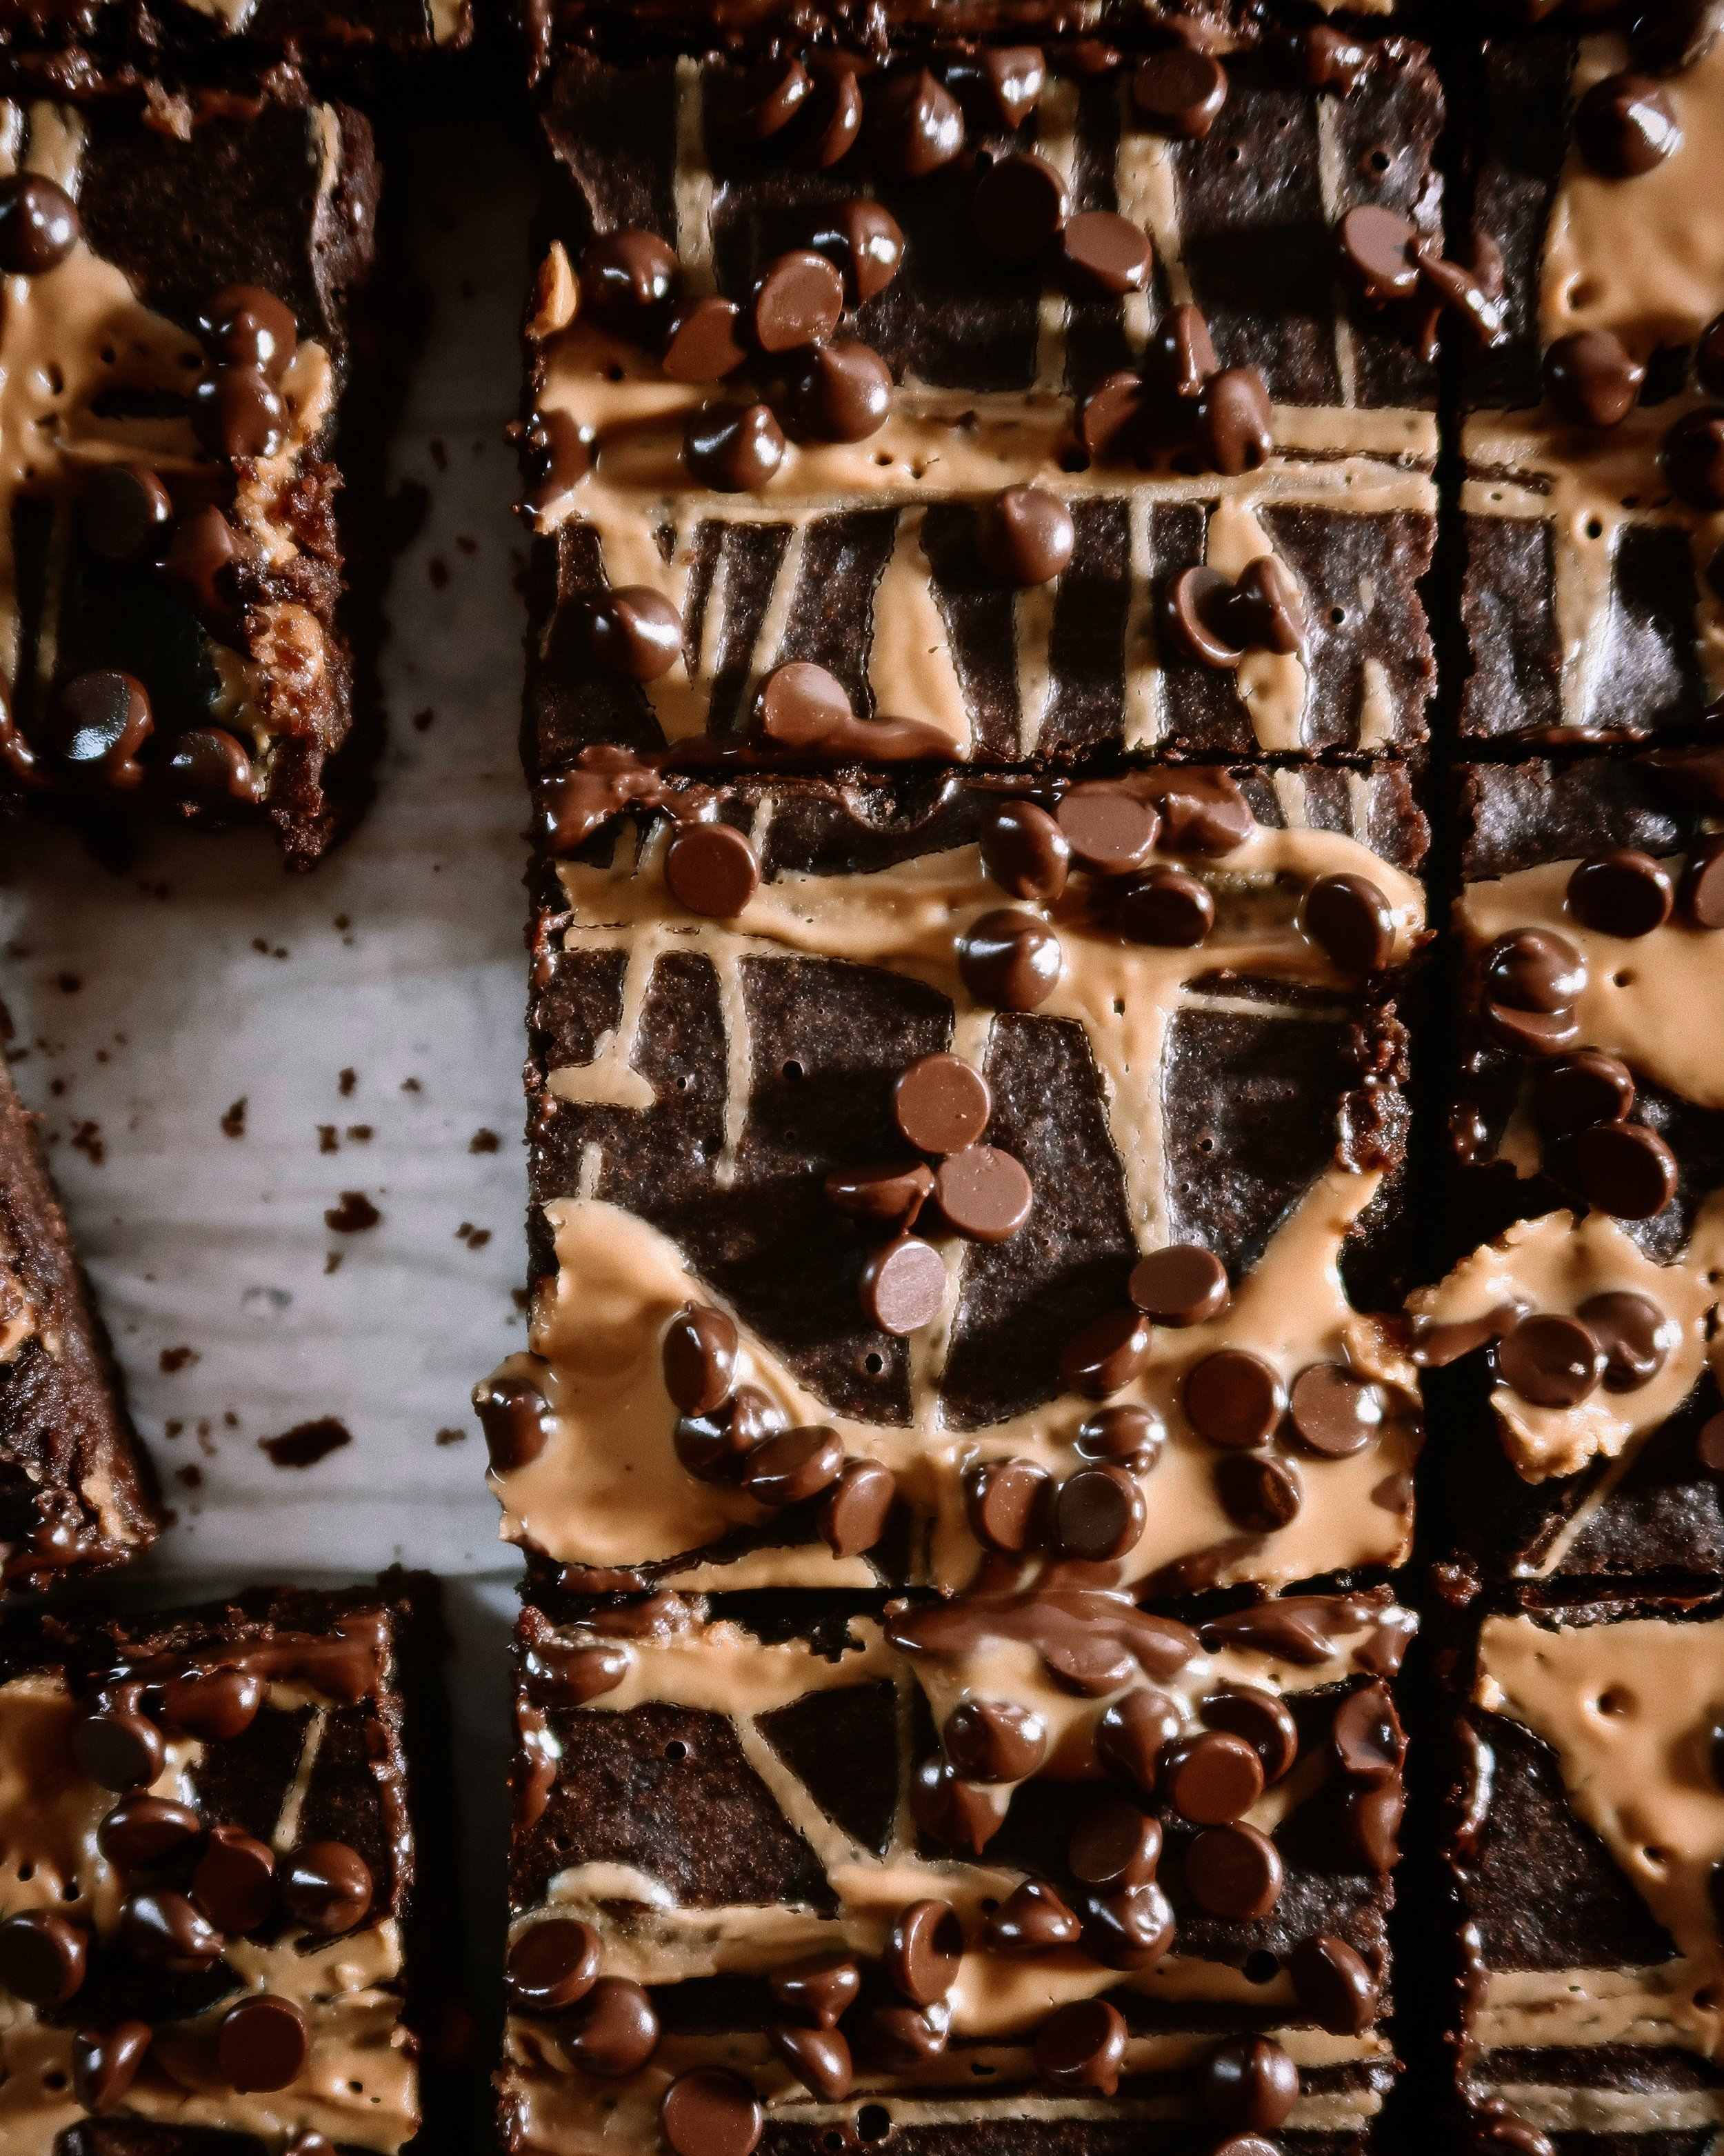 PEANUT BUTTER BROWNIES - INGREDIENTS2 eggs (or 2 flax eggs)1 cup non-dairy milk1 cup gluten free flour (or gluten free oat flour or regular flour)1/3 cup cacao powder1 cup peanut butter1 tsp baking powder1 tsp vanilla extract1/2 cup coconut sugarpinch sea salt1/2 cup dairy free chocolate chips